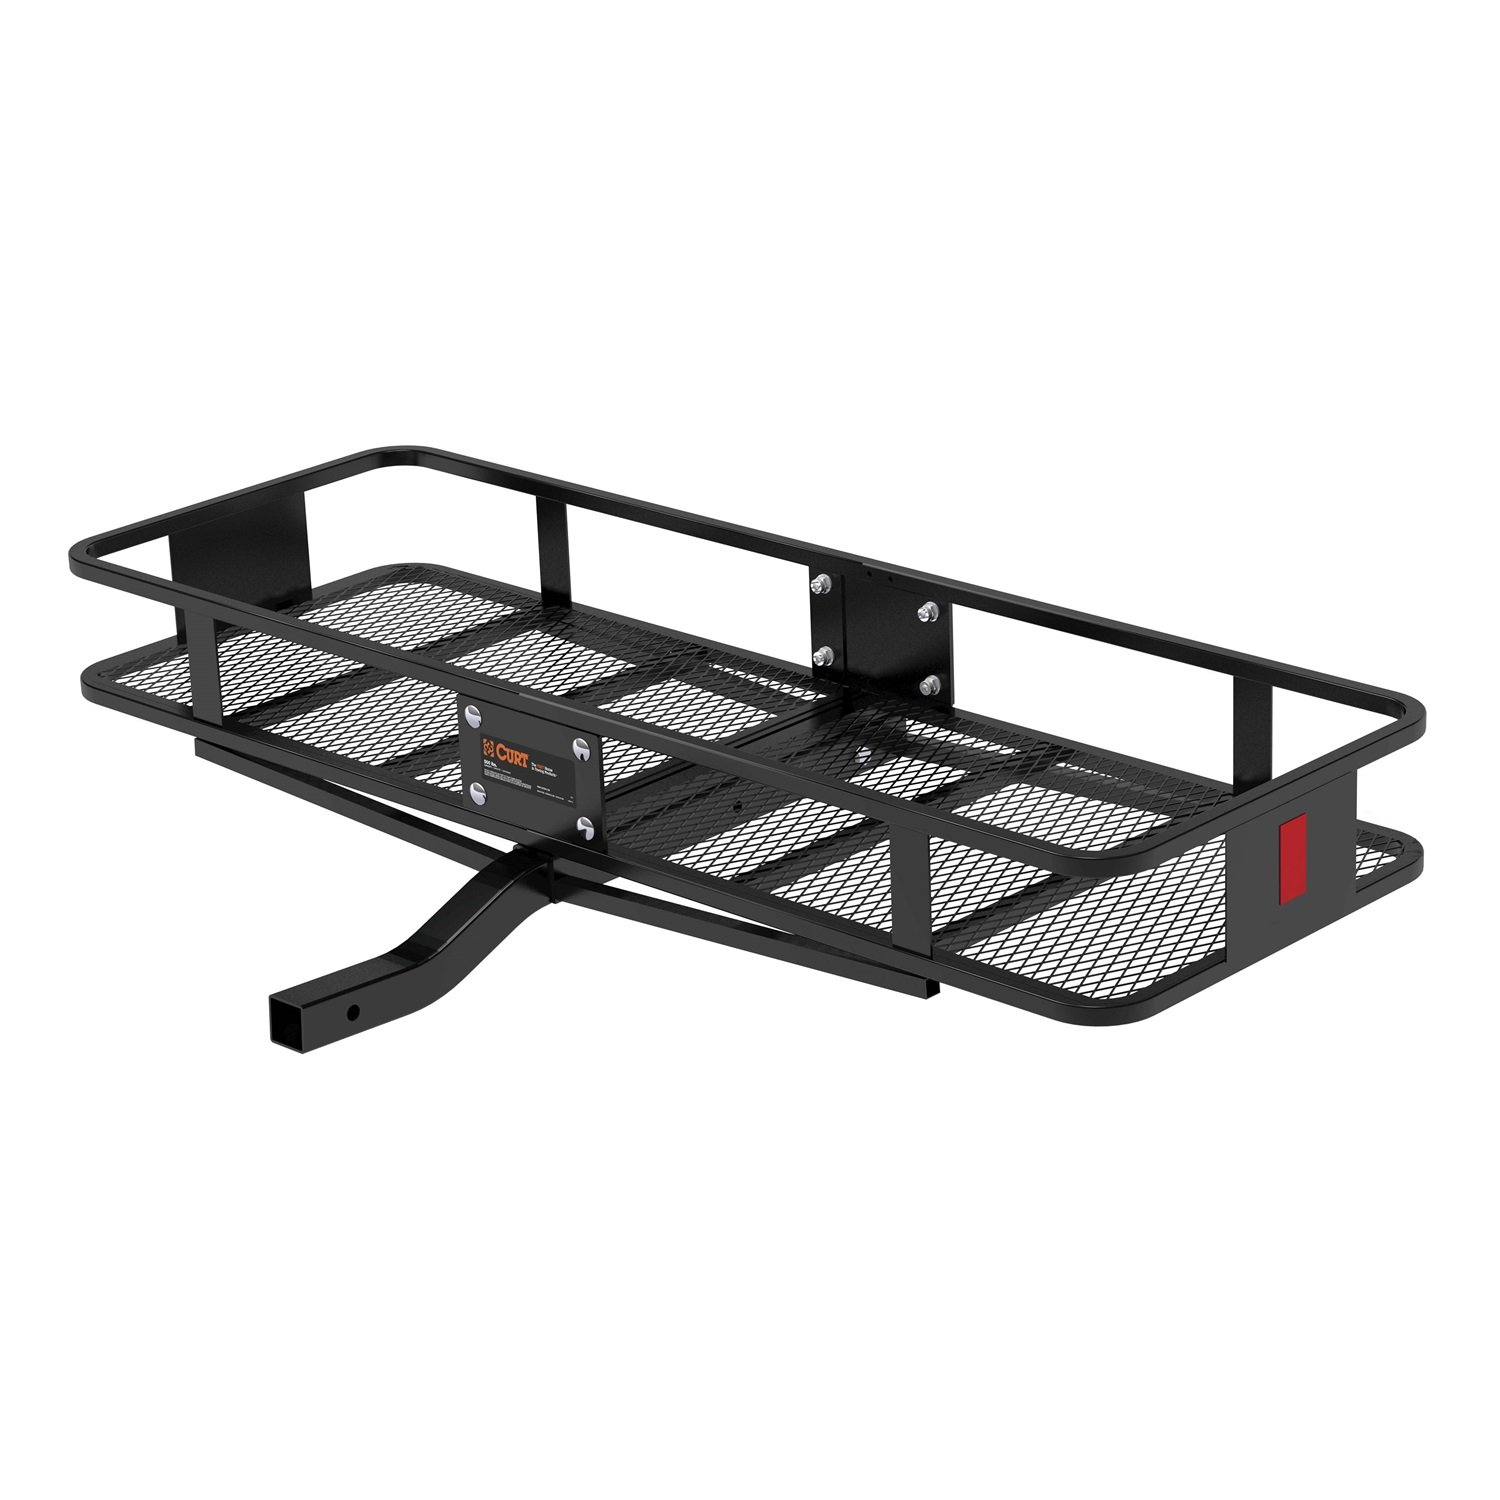 Curt Manufacturing Curt 18150 Black 59-1//2 x 20-1//4 x 5-1//2 Basket-Style Hitch Cargo Carrier Fits 2 Receiver